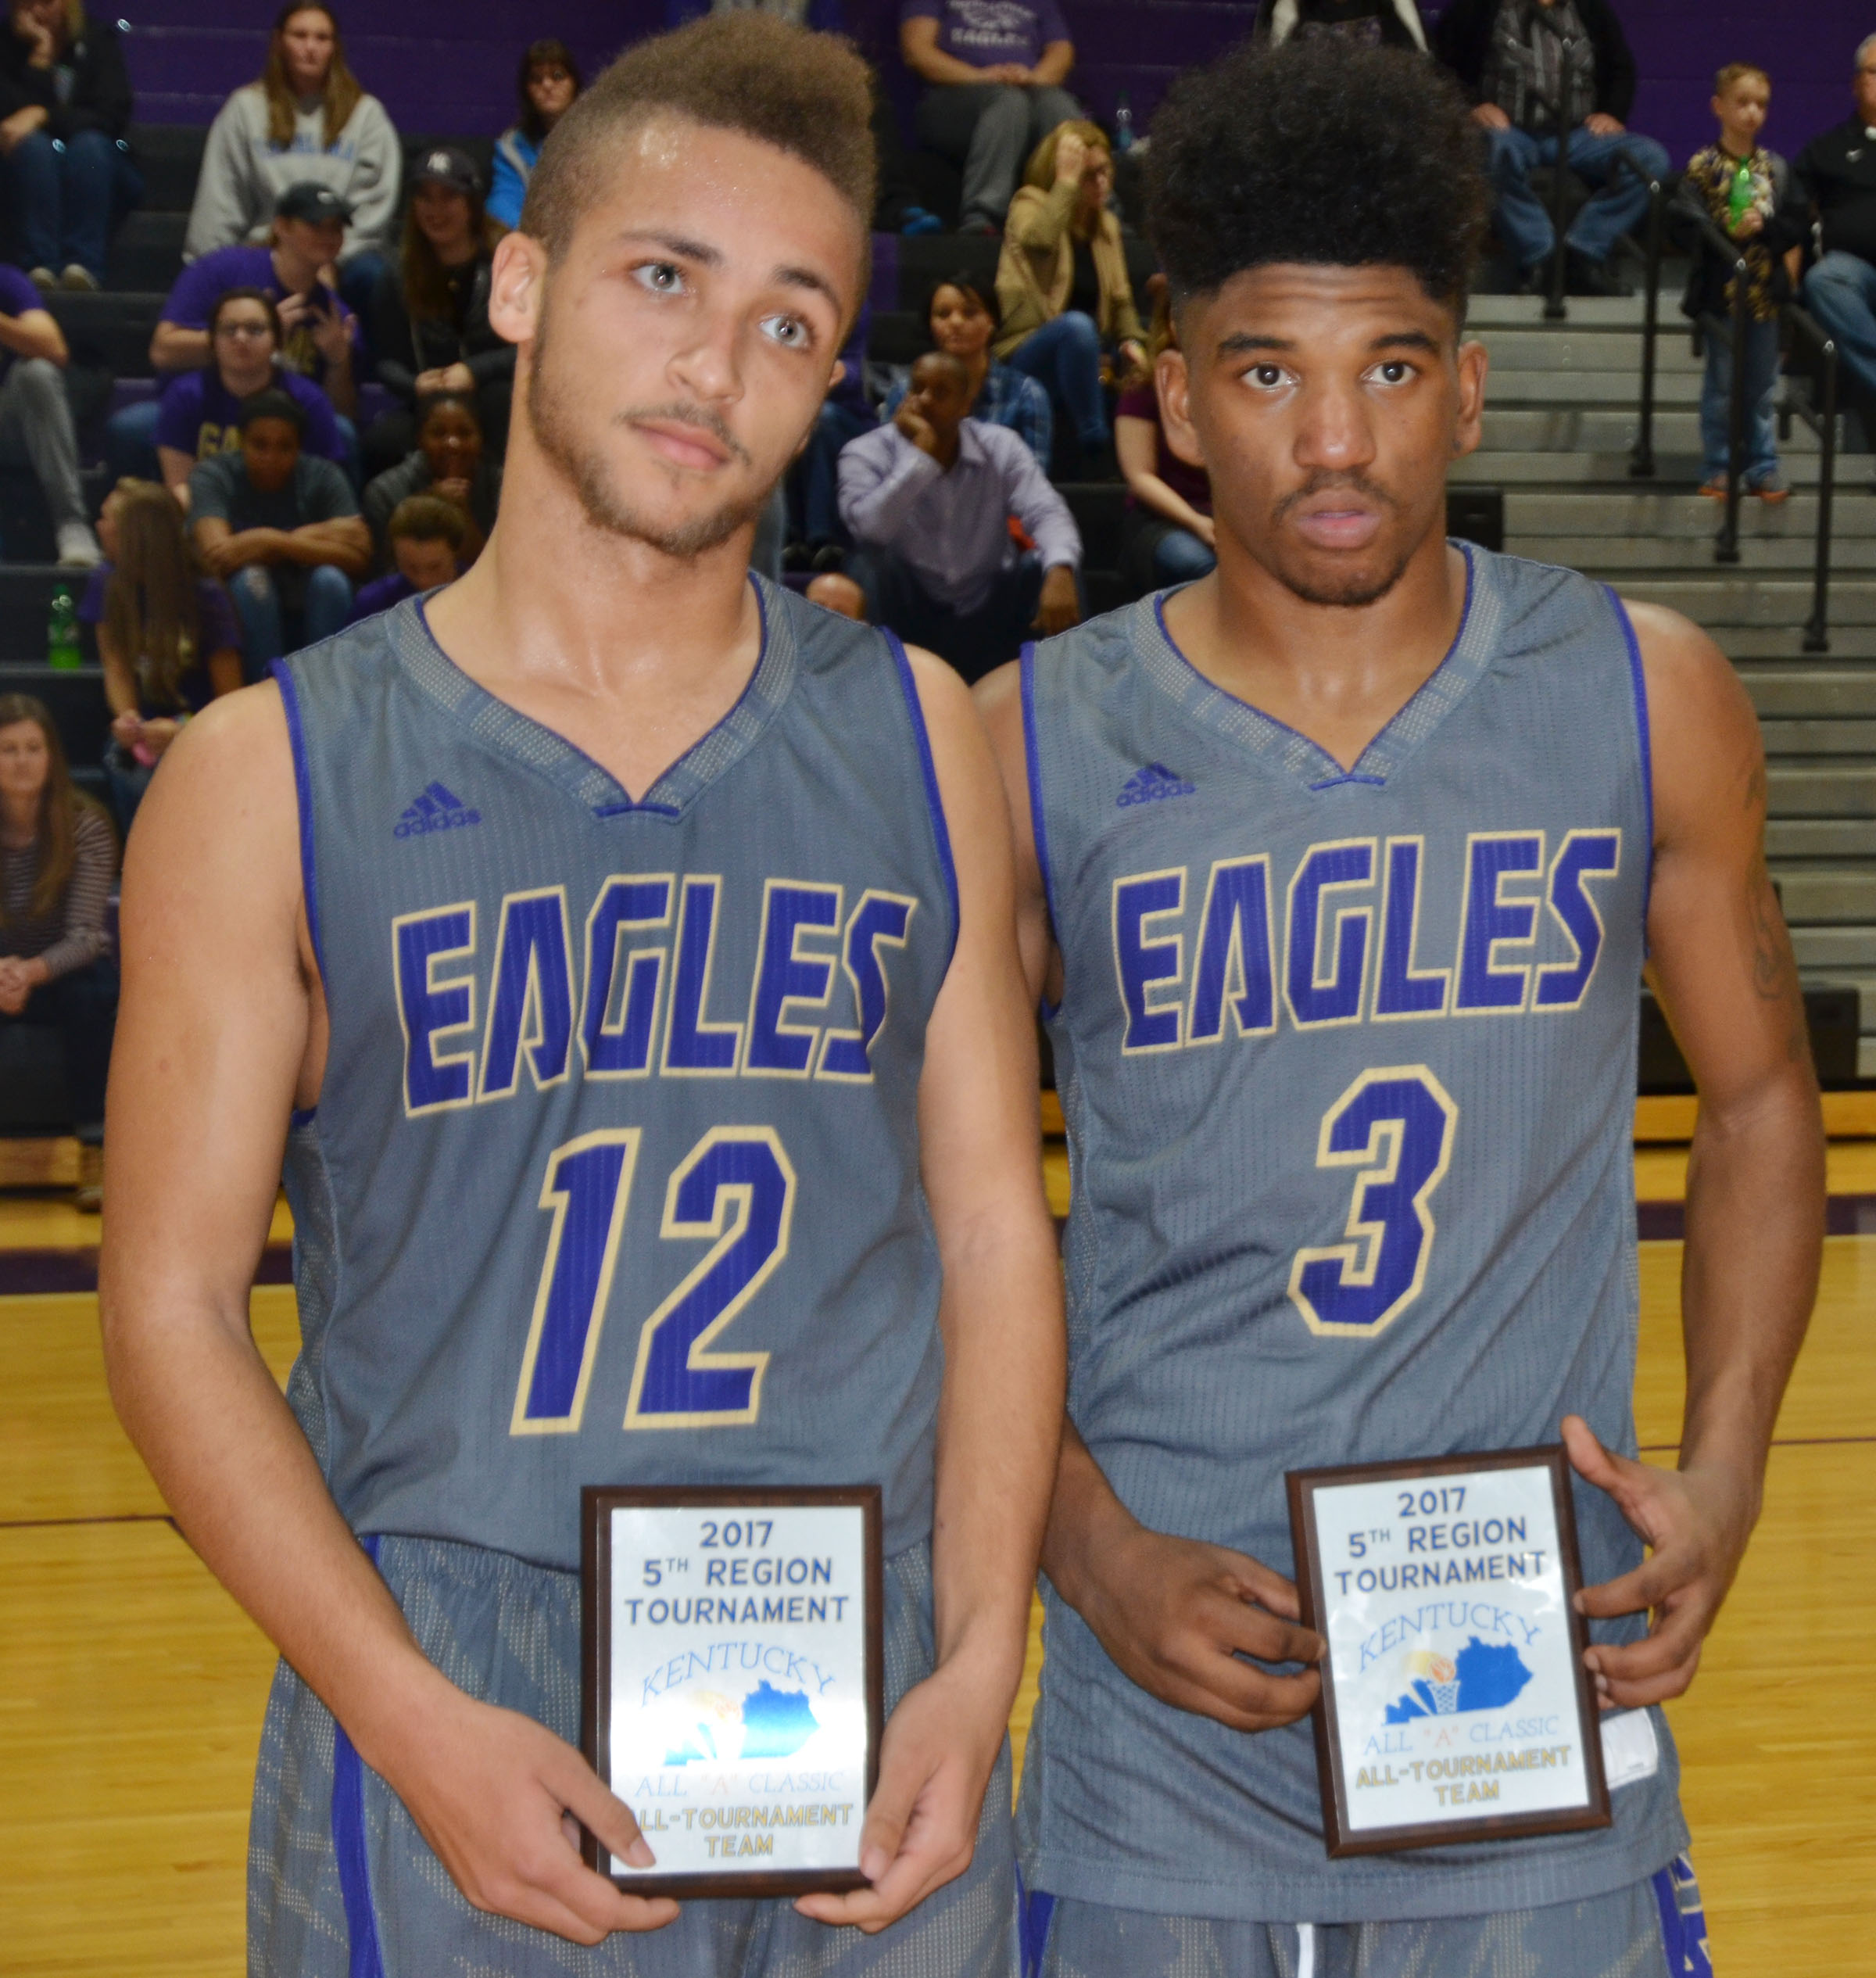 CHS juniors Ethan Lay, at left, and Tyrion Taylor were named to the all-tournament team.